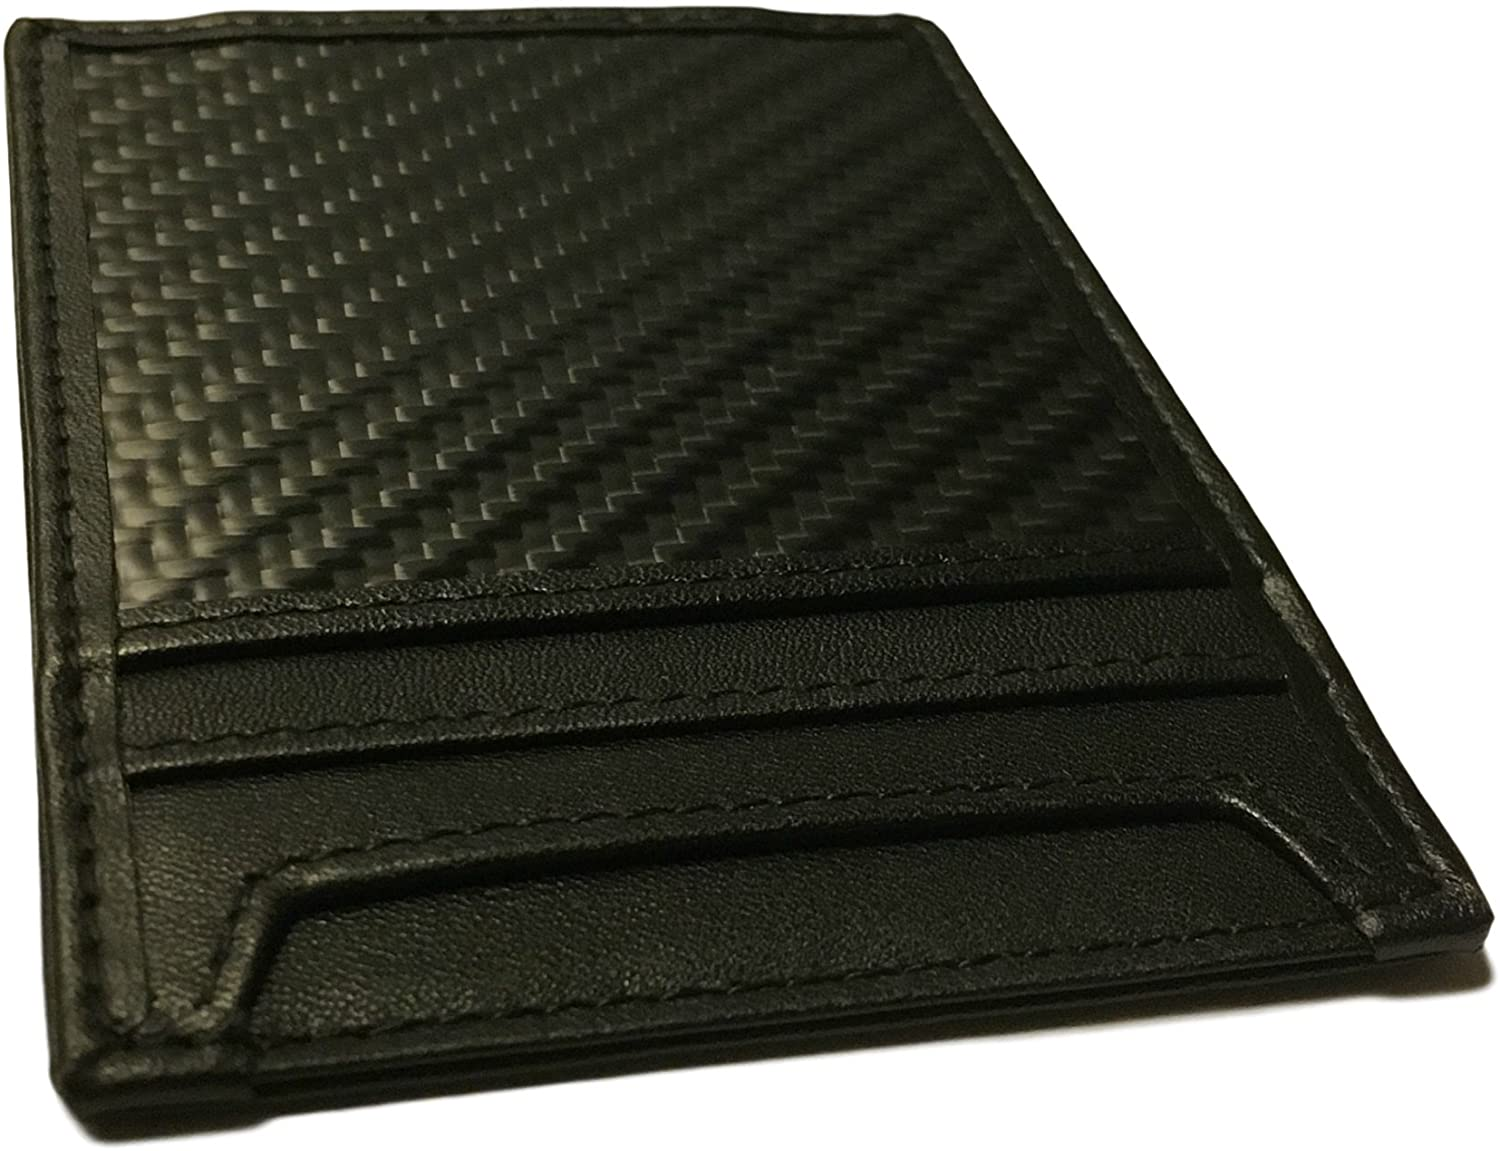 Carbon Fiber Wallet, RFID blocker with Leather and Magnetic Money Clip